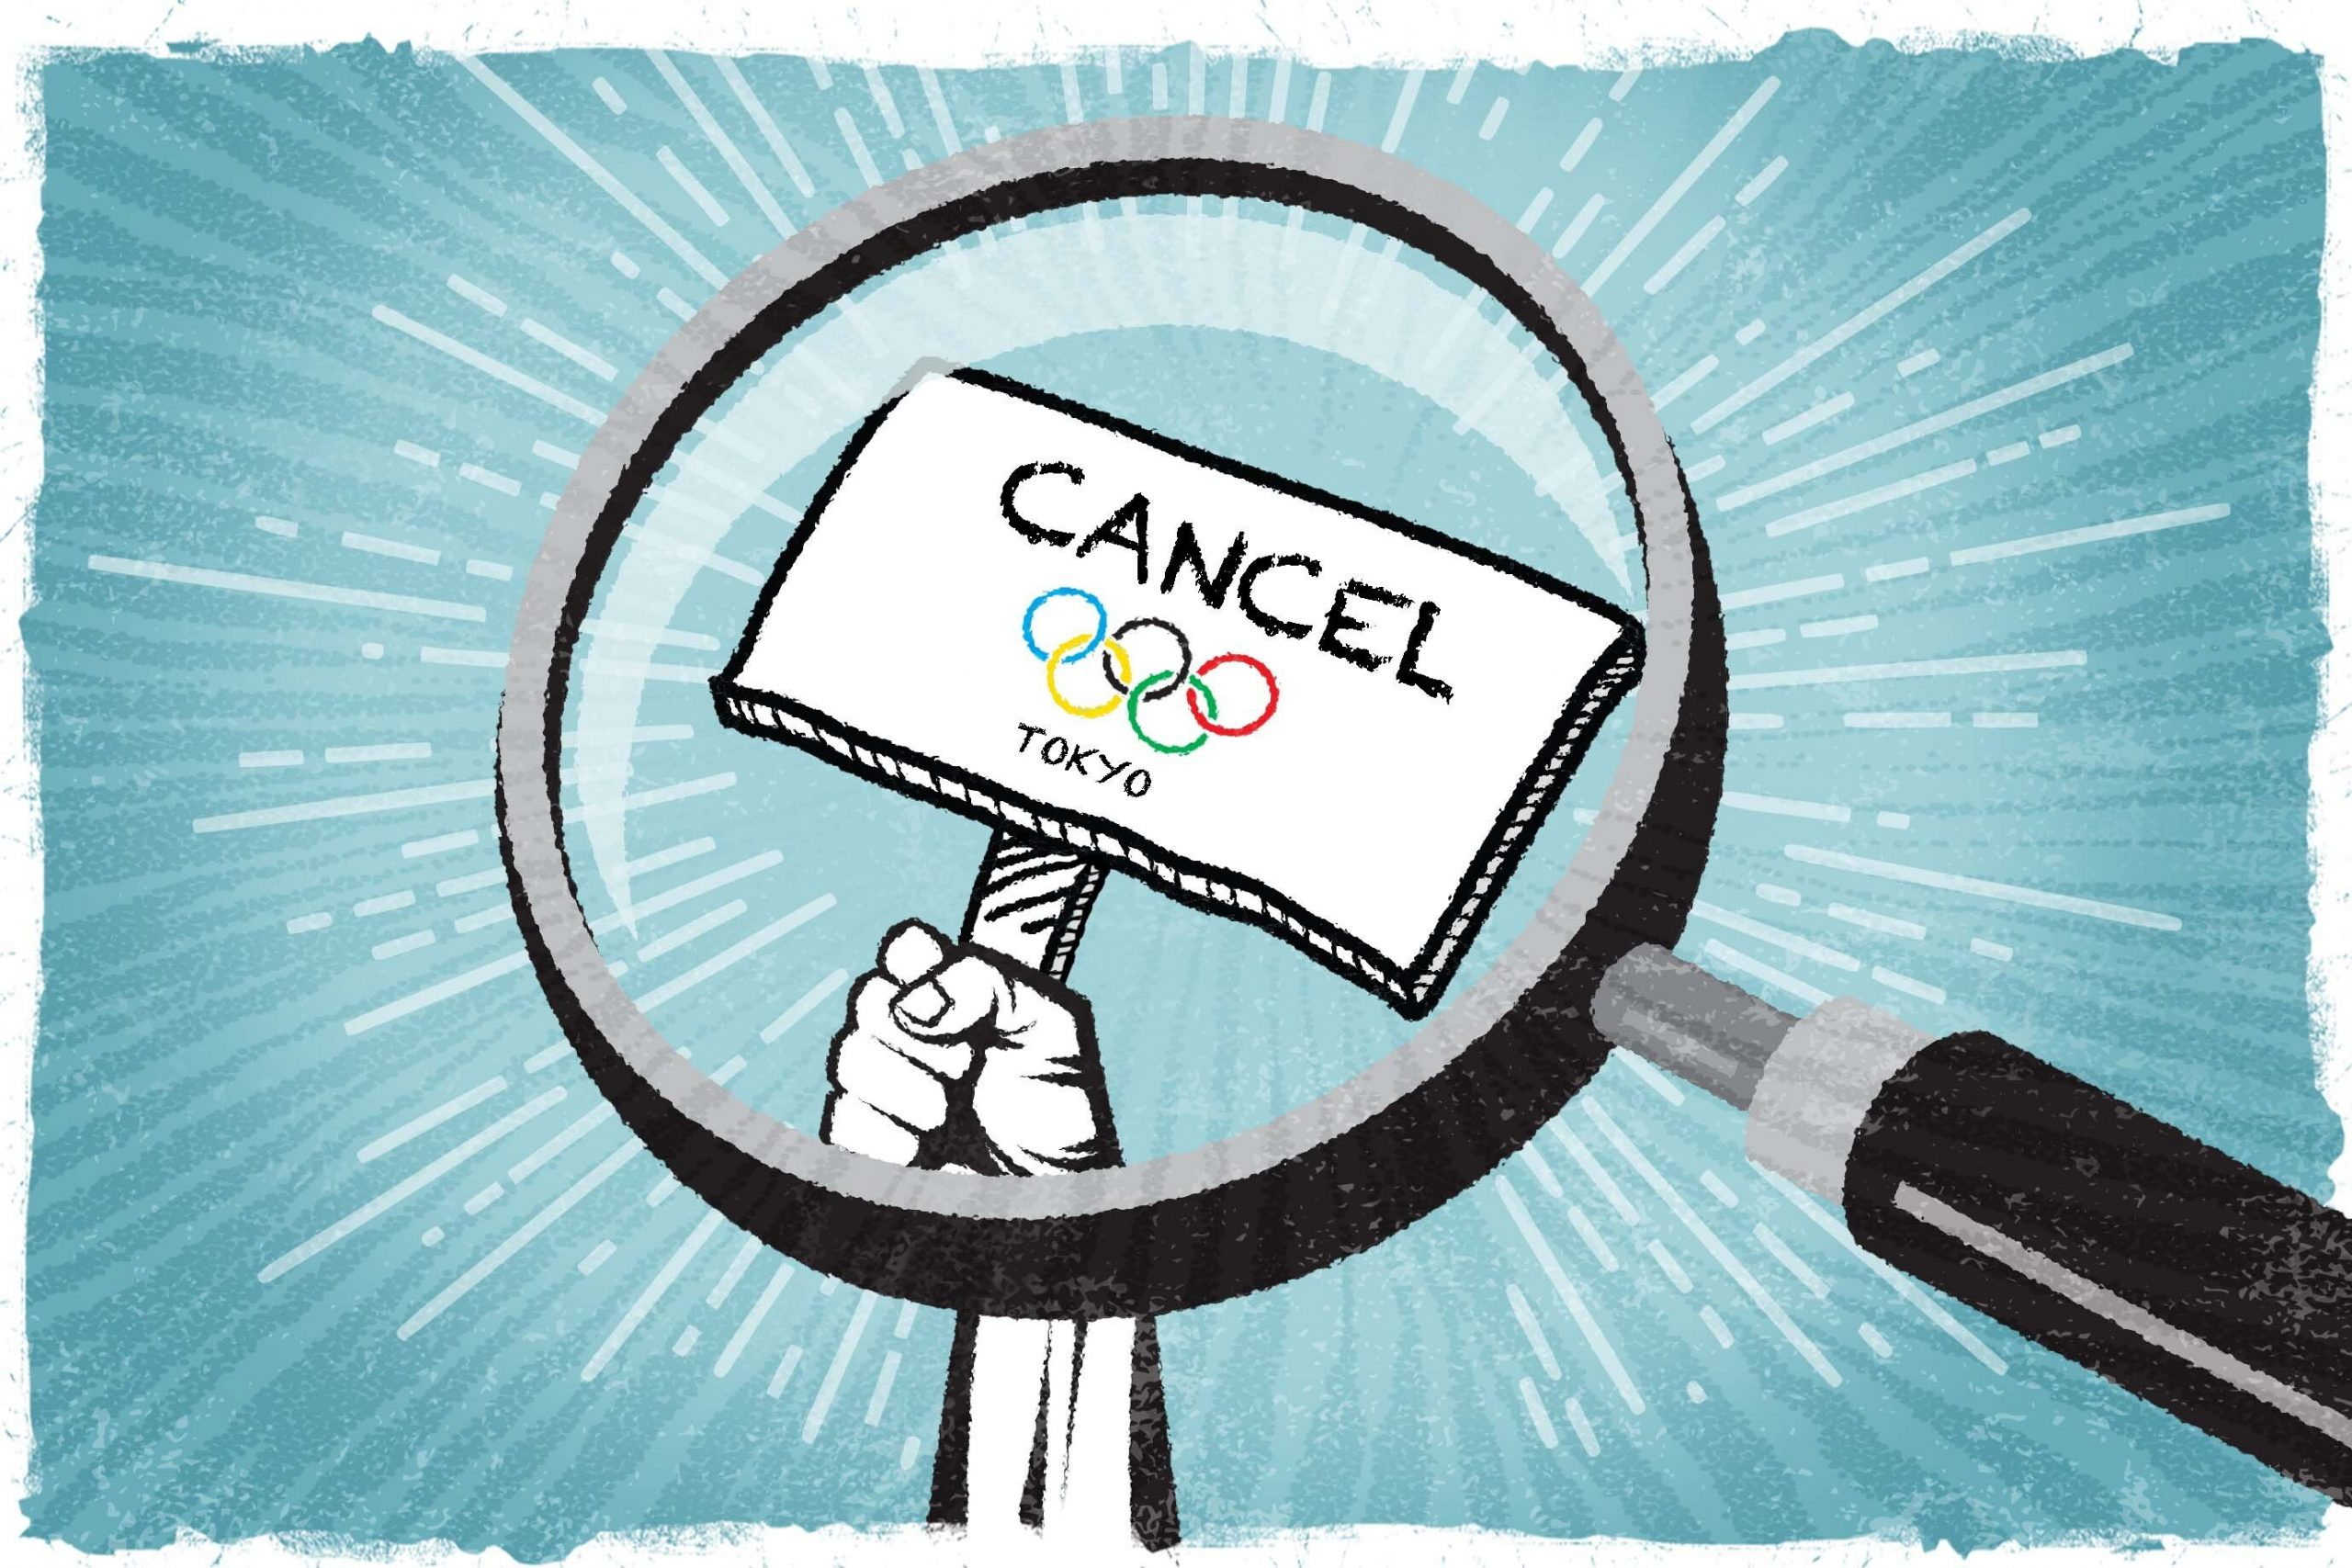 """A drawing of the Olympic rings with the word """"CANCEL"""" written above it. A magnifying glass is positioned in front of the rings."""